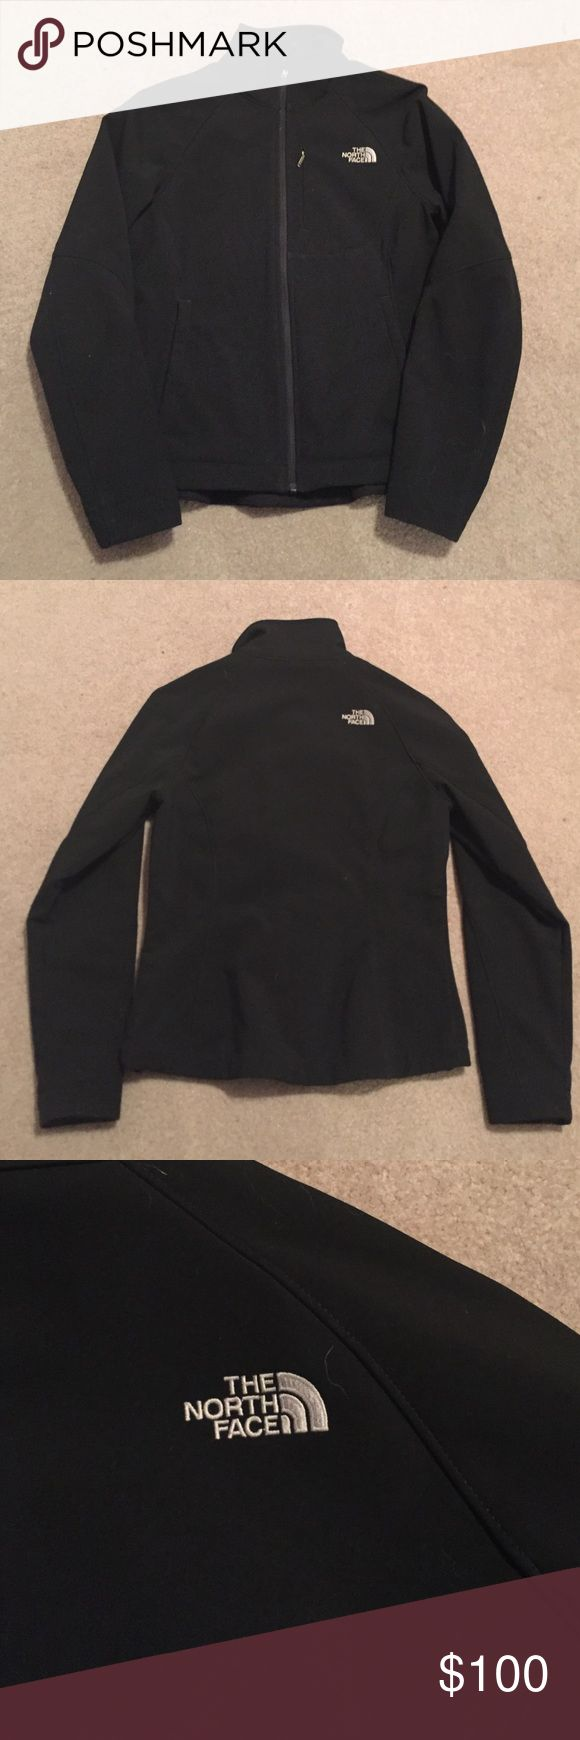 North face slim fit ladies jacket. Great condition, no flaws. North Face Jackets & Coats